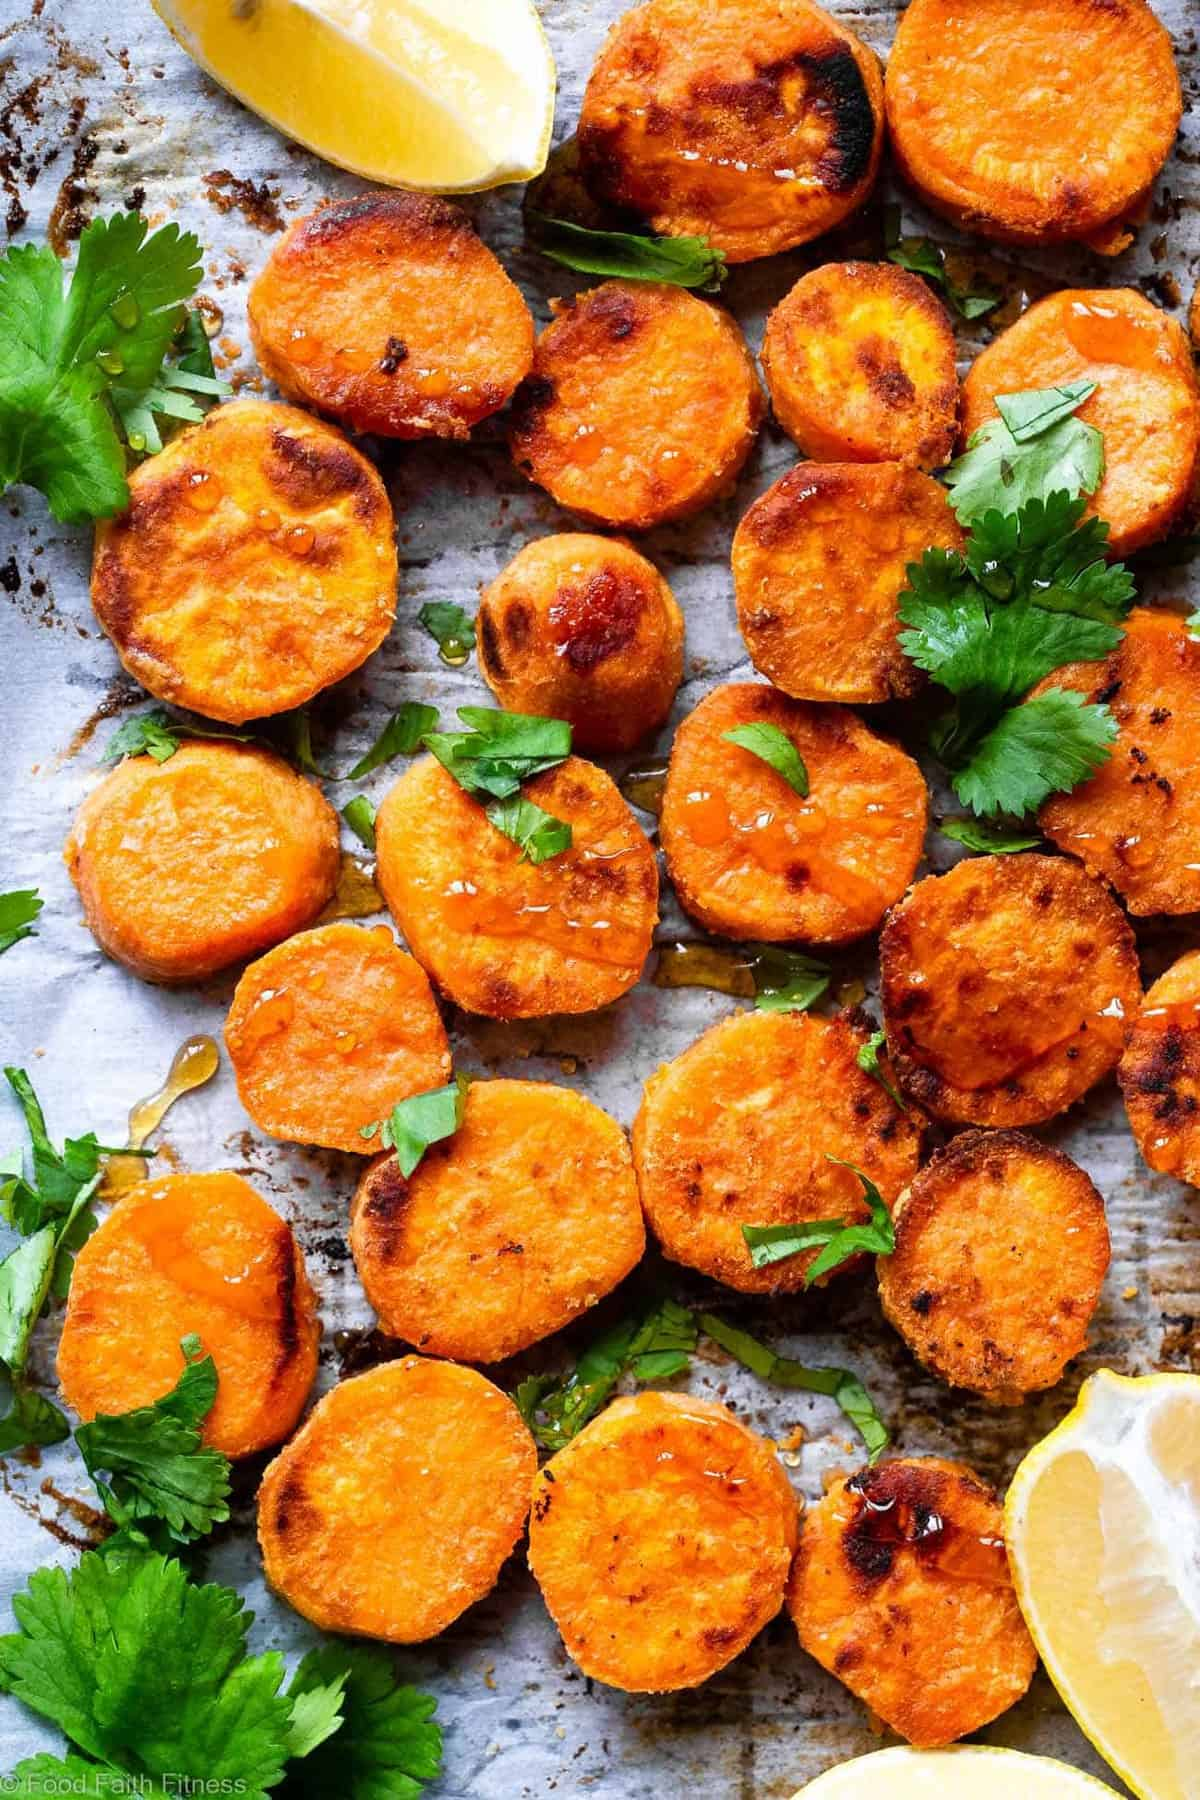 Tahini Maple Roasted Sweet Potatoes -These quick and easy, gluten freeRoasted Sweet Potatoes are SO soft, tender and flavorful! A delicious, healthy side dish that everyone will love! | #FoodFaithFitness | #Glutenfree #Paleo #Healthy #Vegetarian #Dairyfree